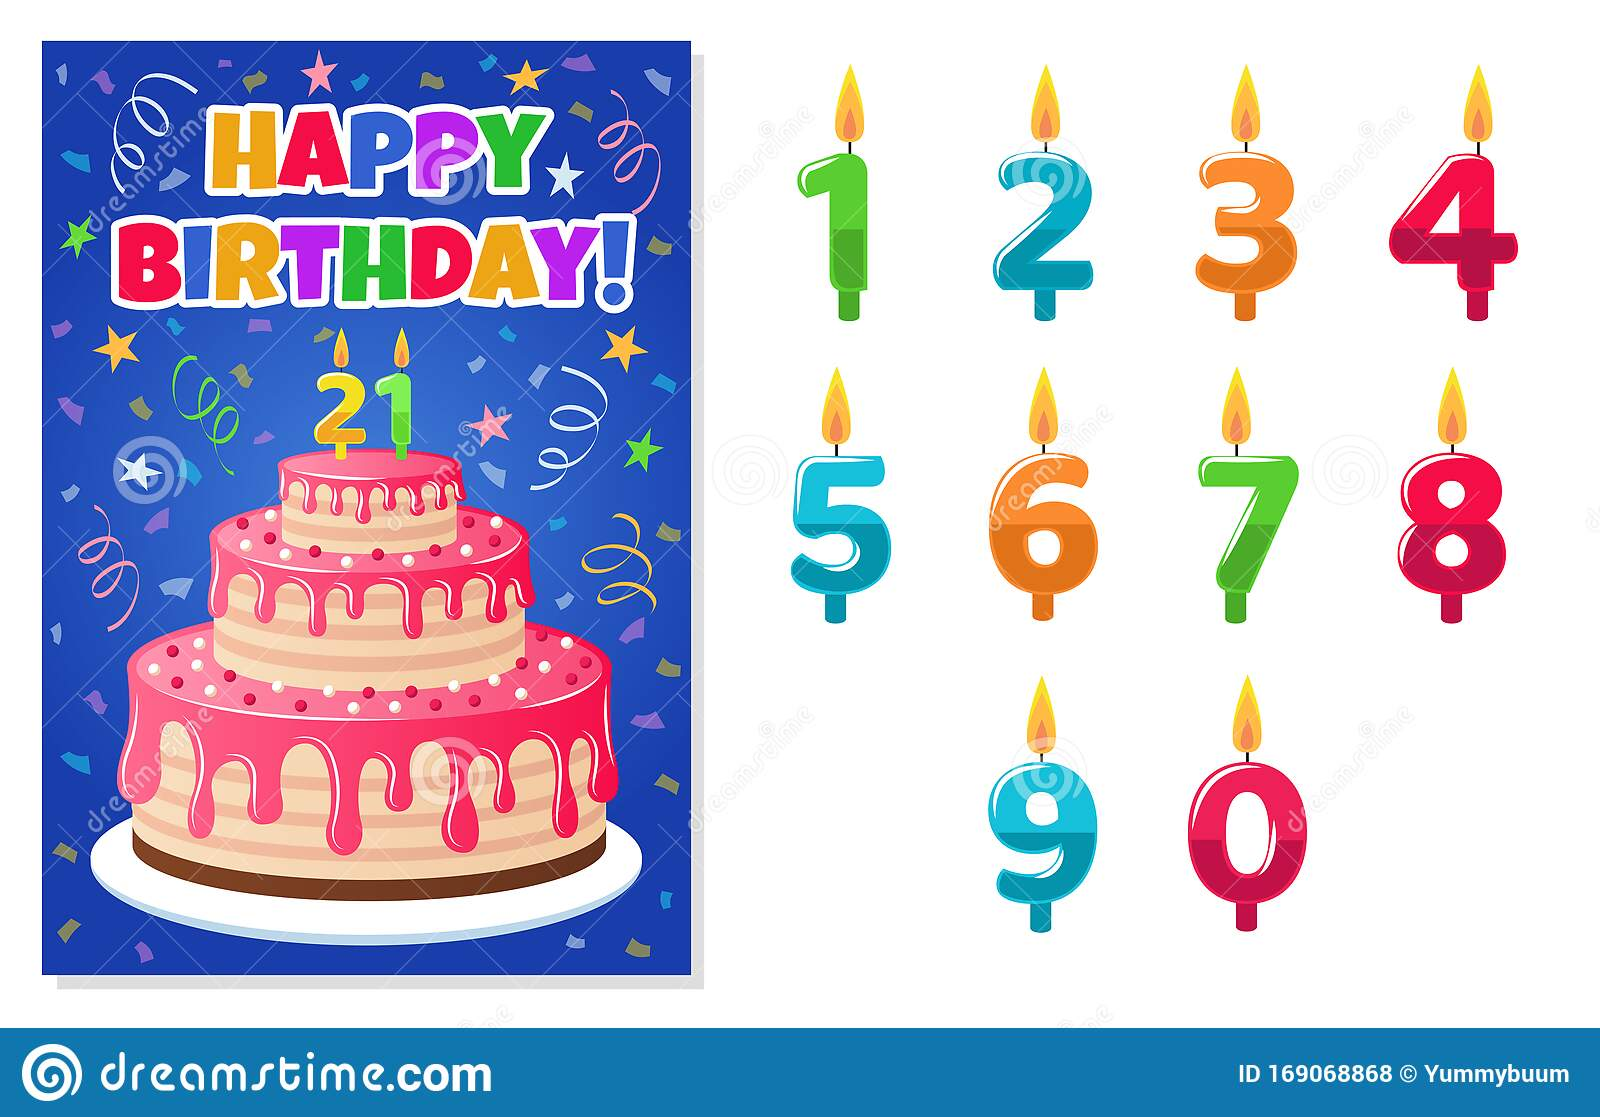 Birthday Card With Numbers Candles Anniversary Invitation Colorful Celebration Cake With Candle Kids Party Greeting Stock Vector Illustration Of Colorful Invitation 169068868